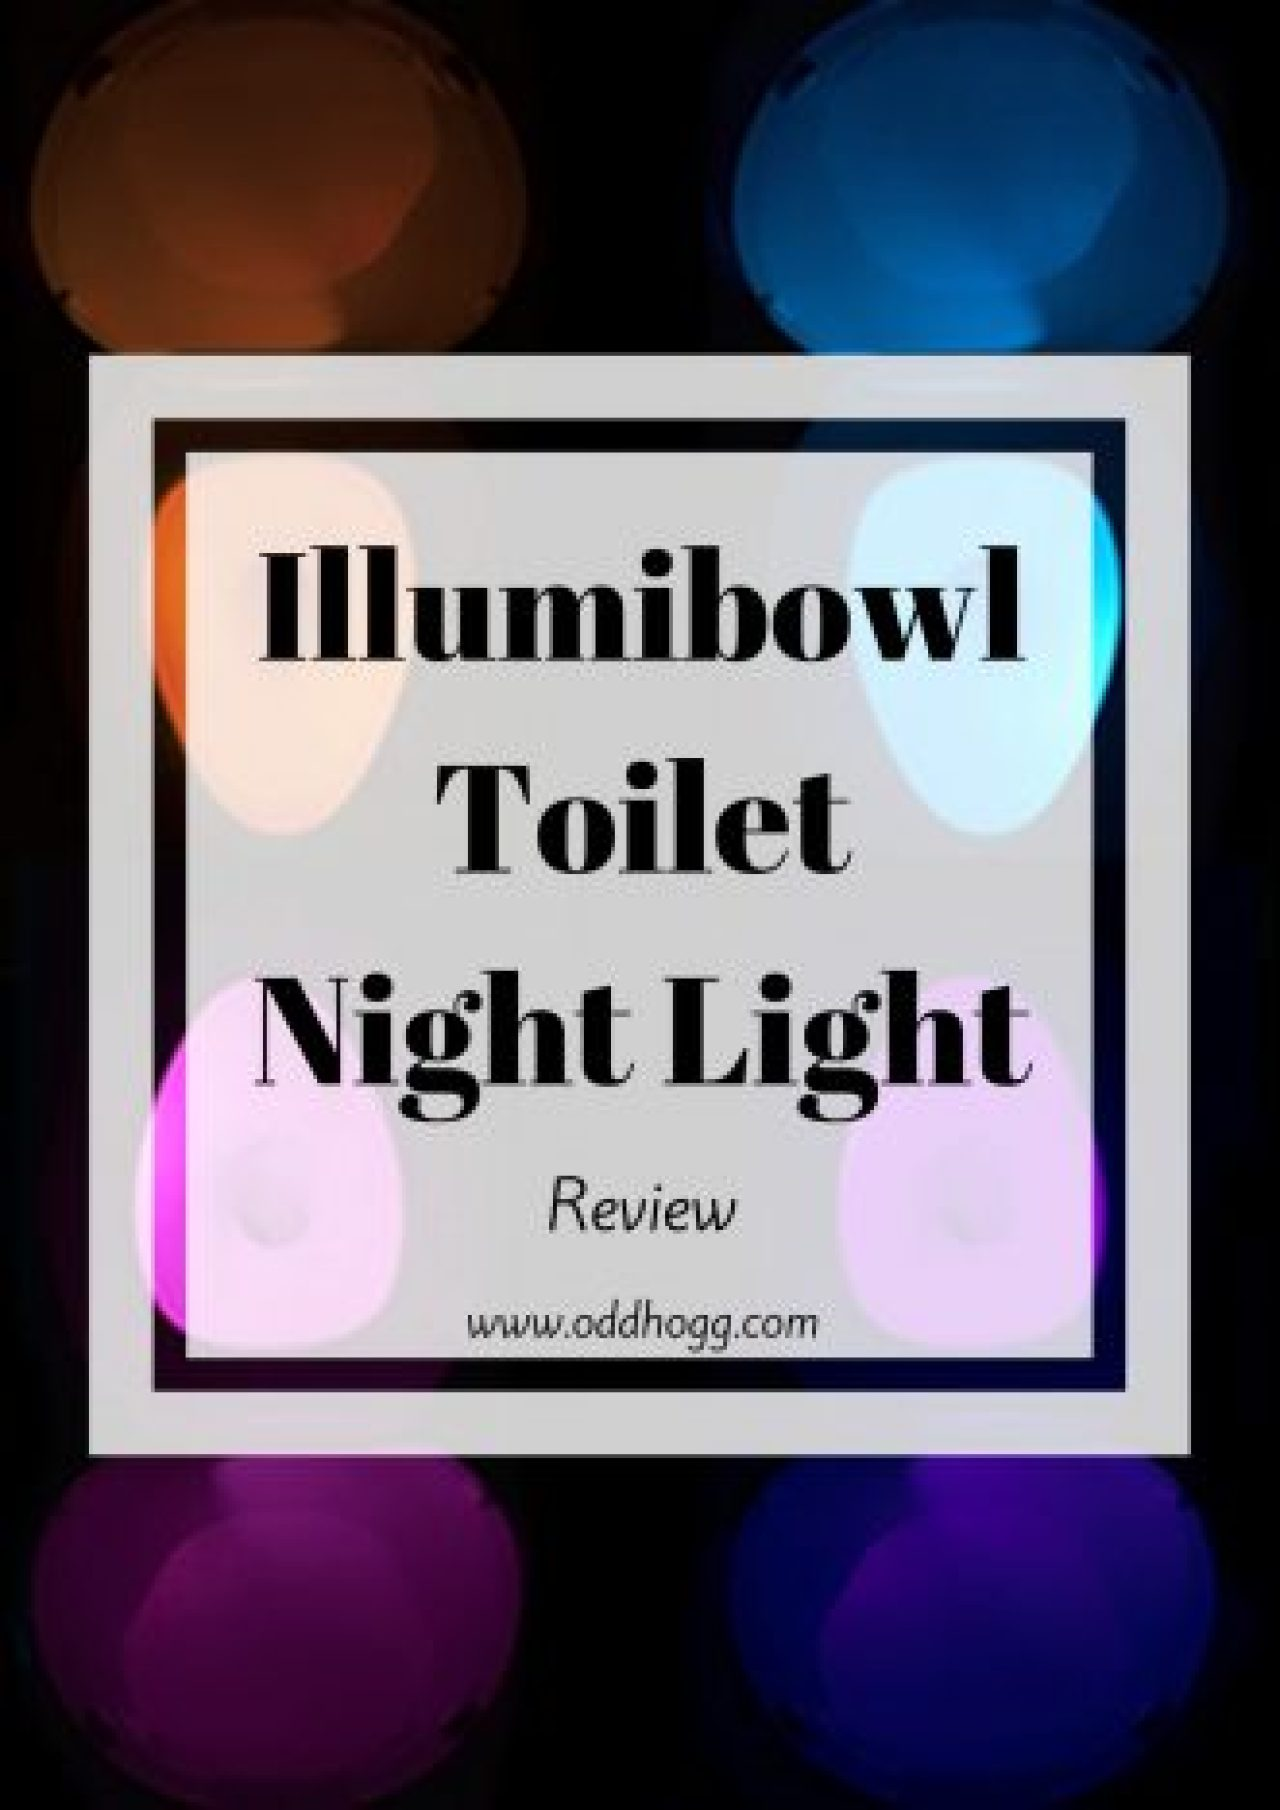 Illumibowl Review | A toilet night light - what a clever idea! Motion sensor activated, we have been trying out this light to see how suitable it would be for tired parents http://oddhogg.com